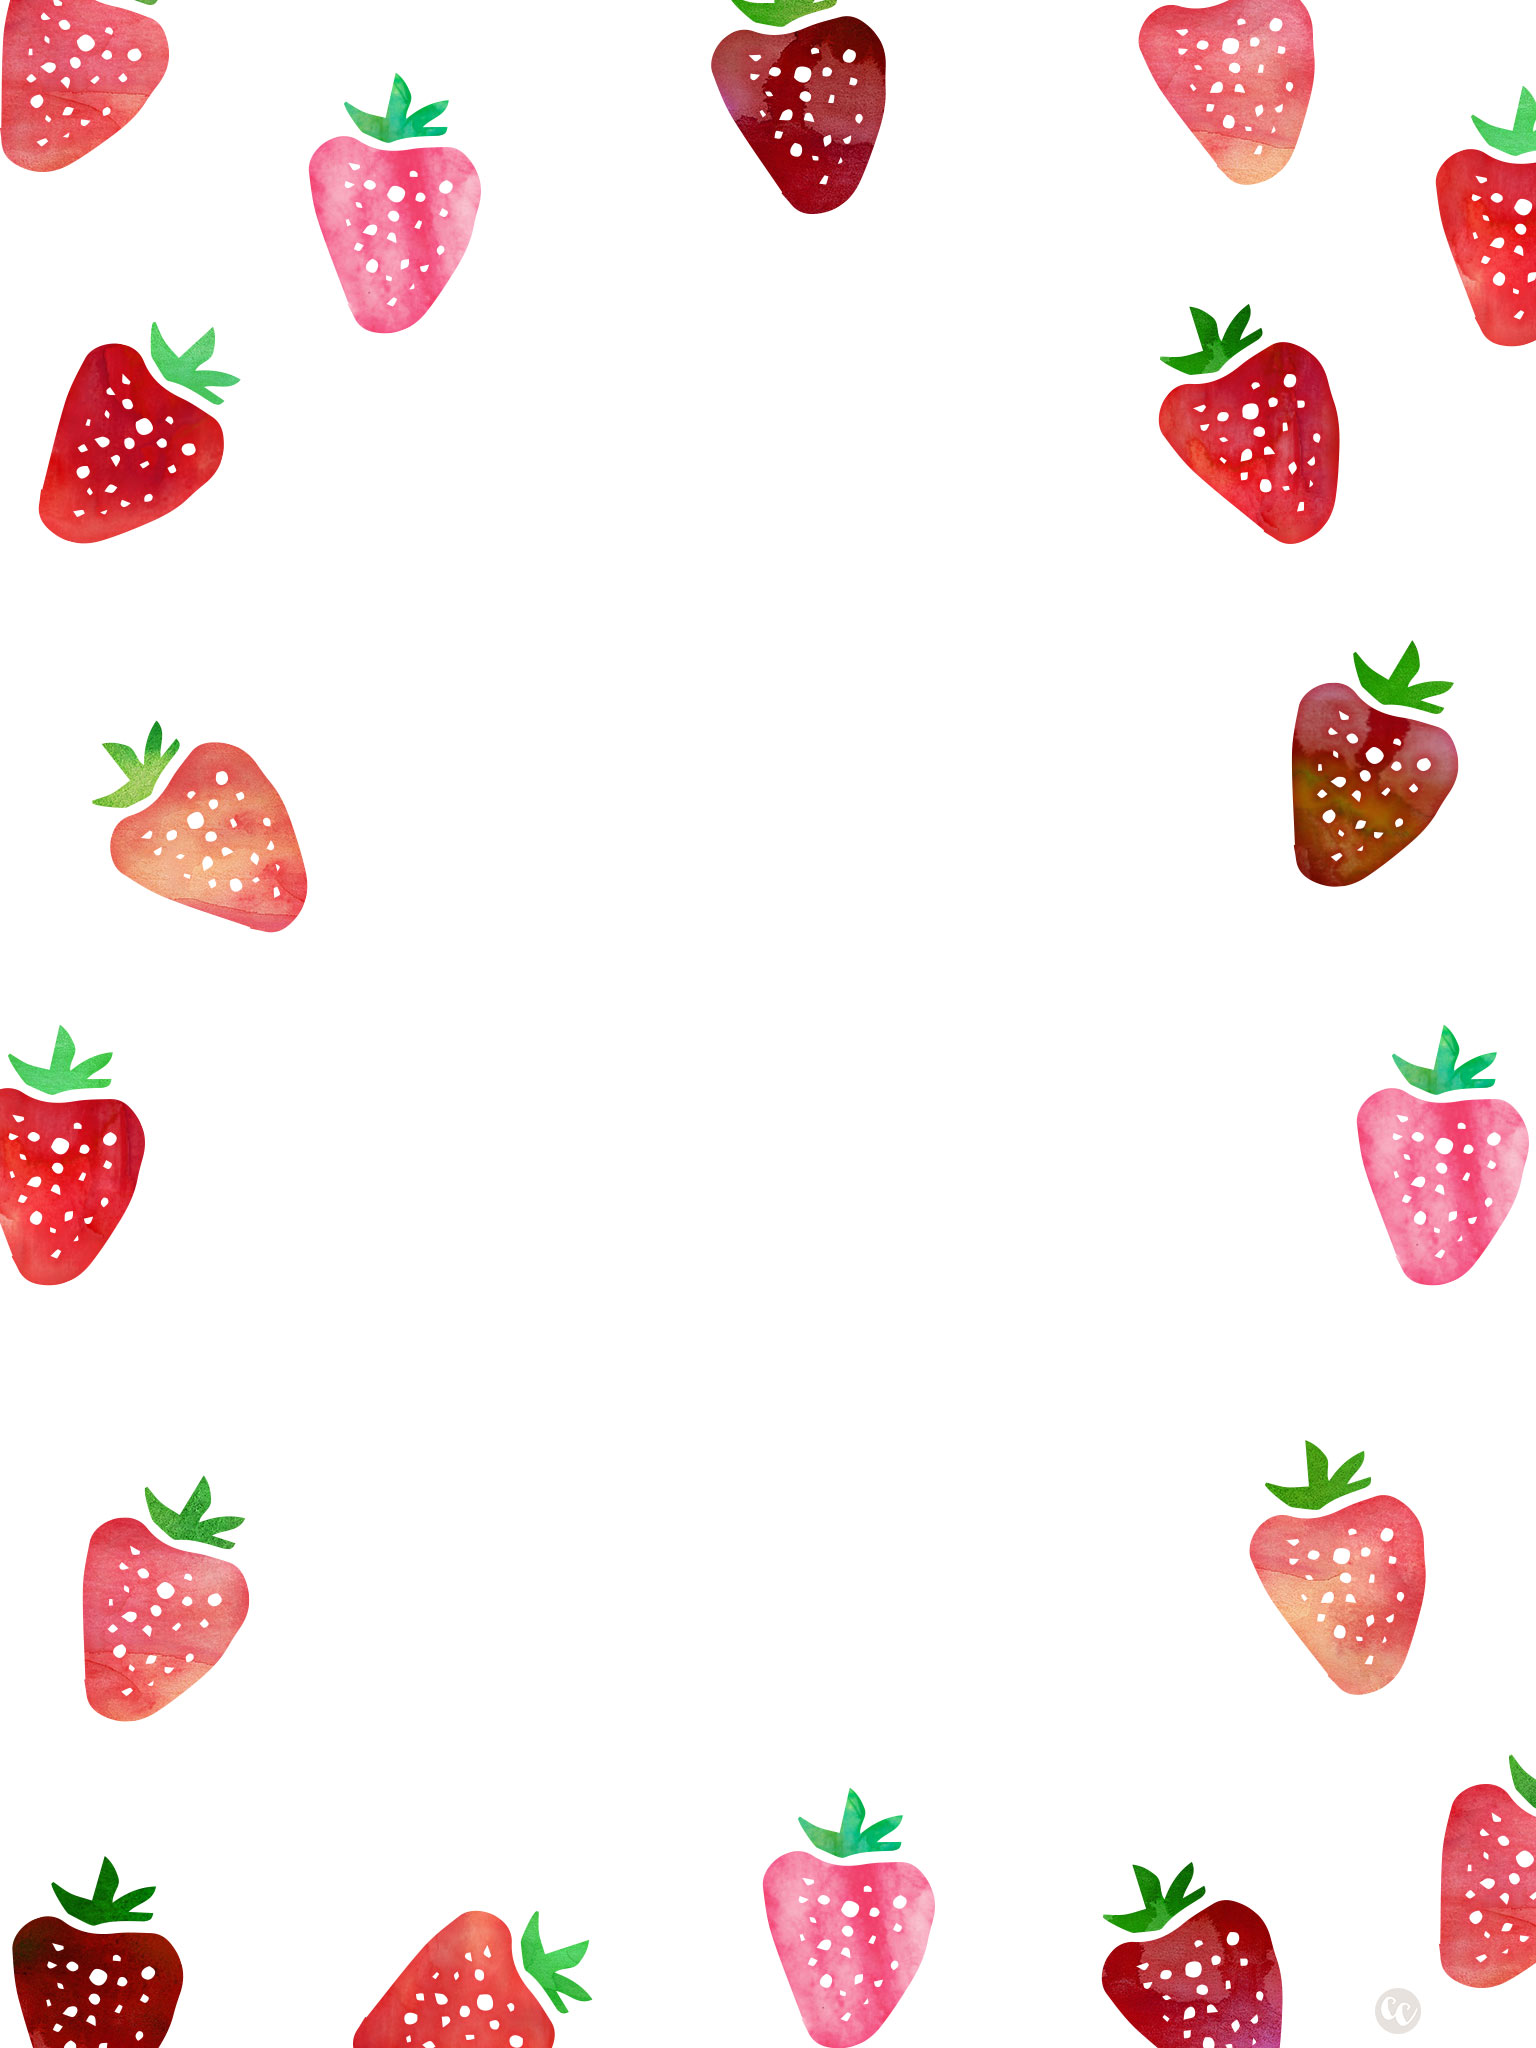 Strawberry milkshake wallpaper